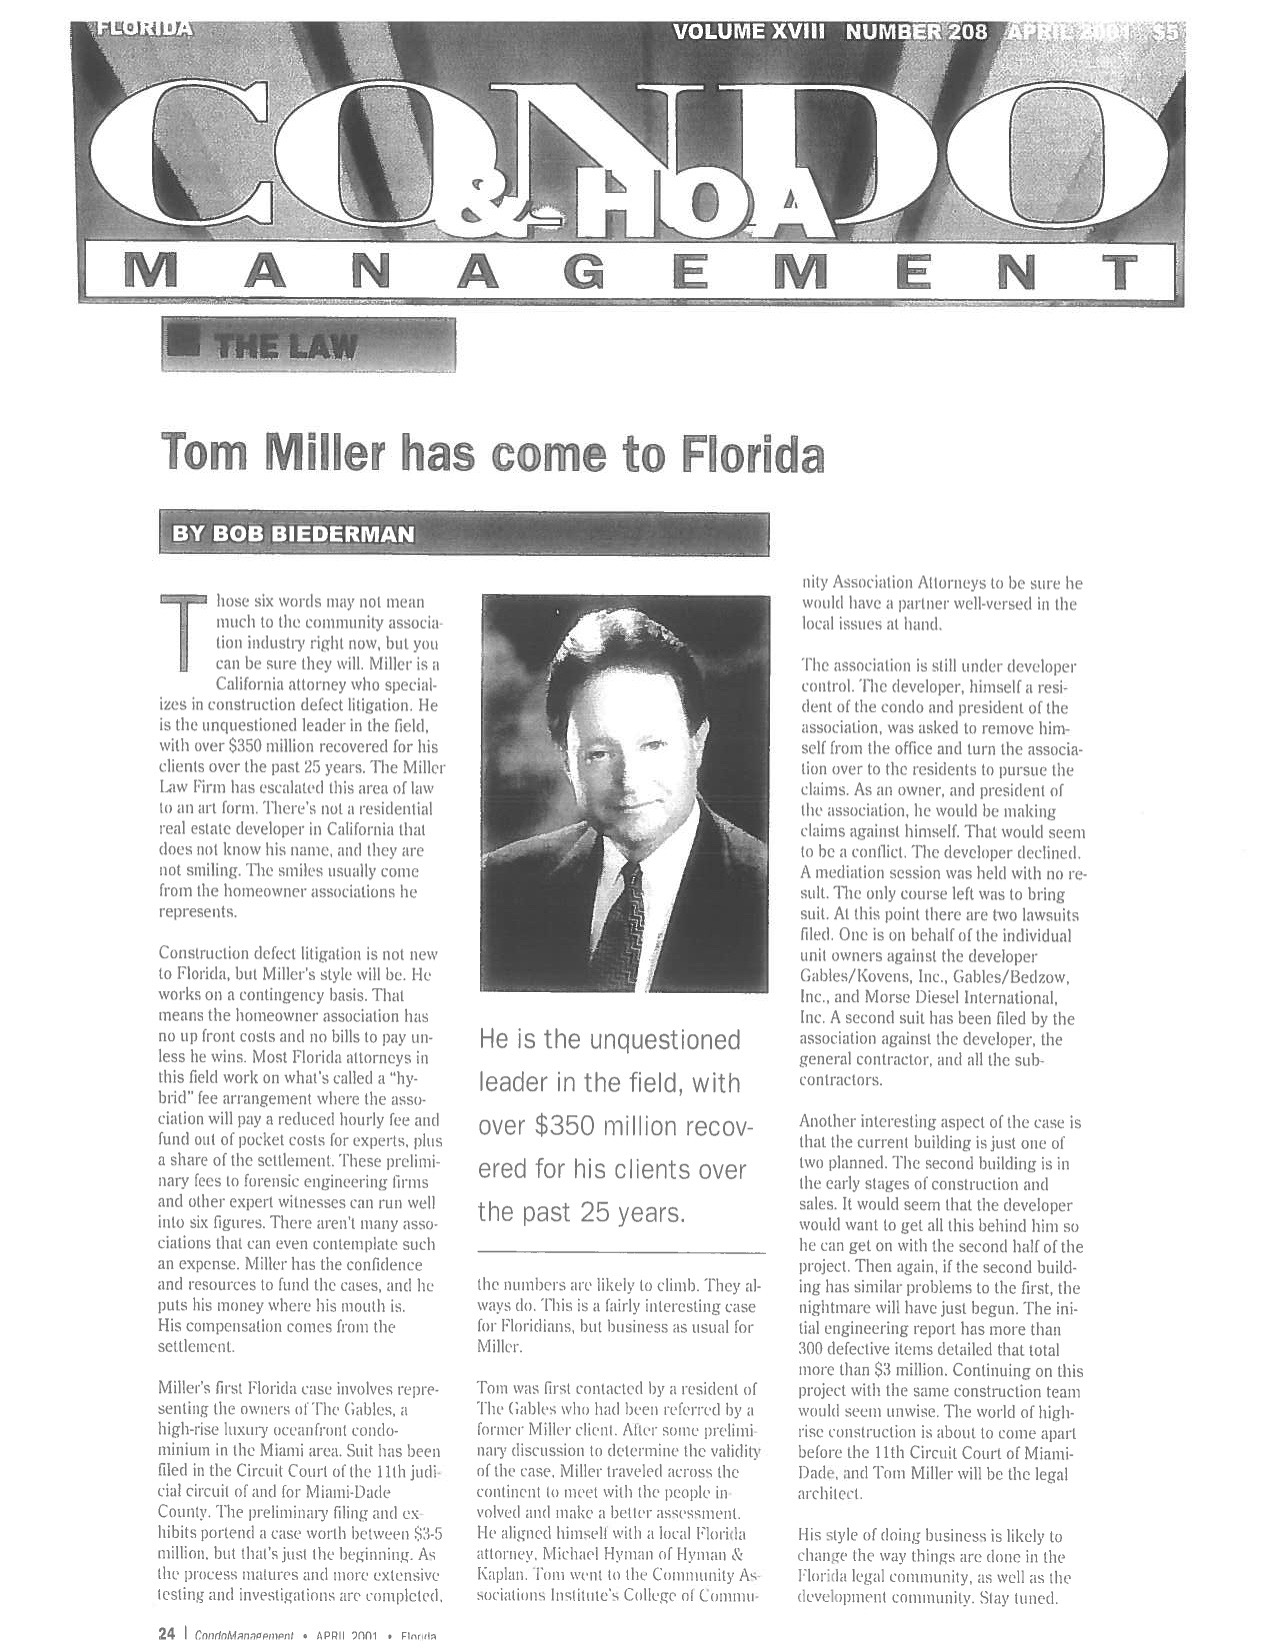 Condo & HOA Management - Tom Miller Has Come To Florida